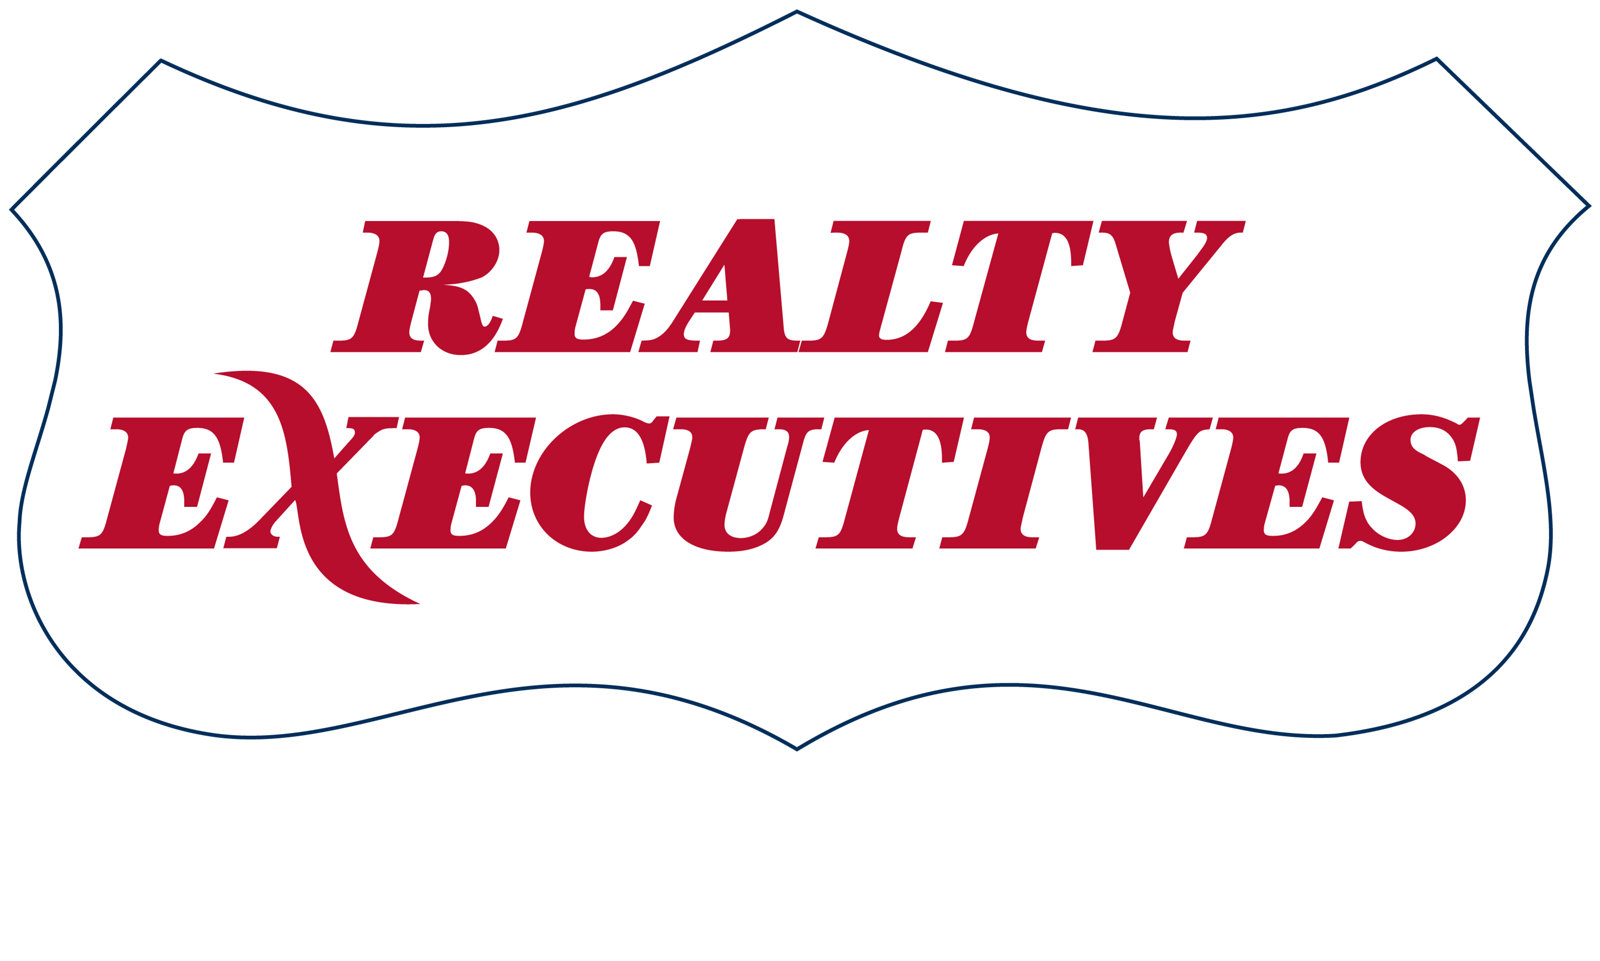 Realty Executives Saskatoon logo